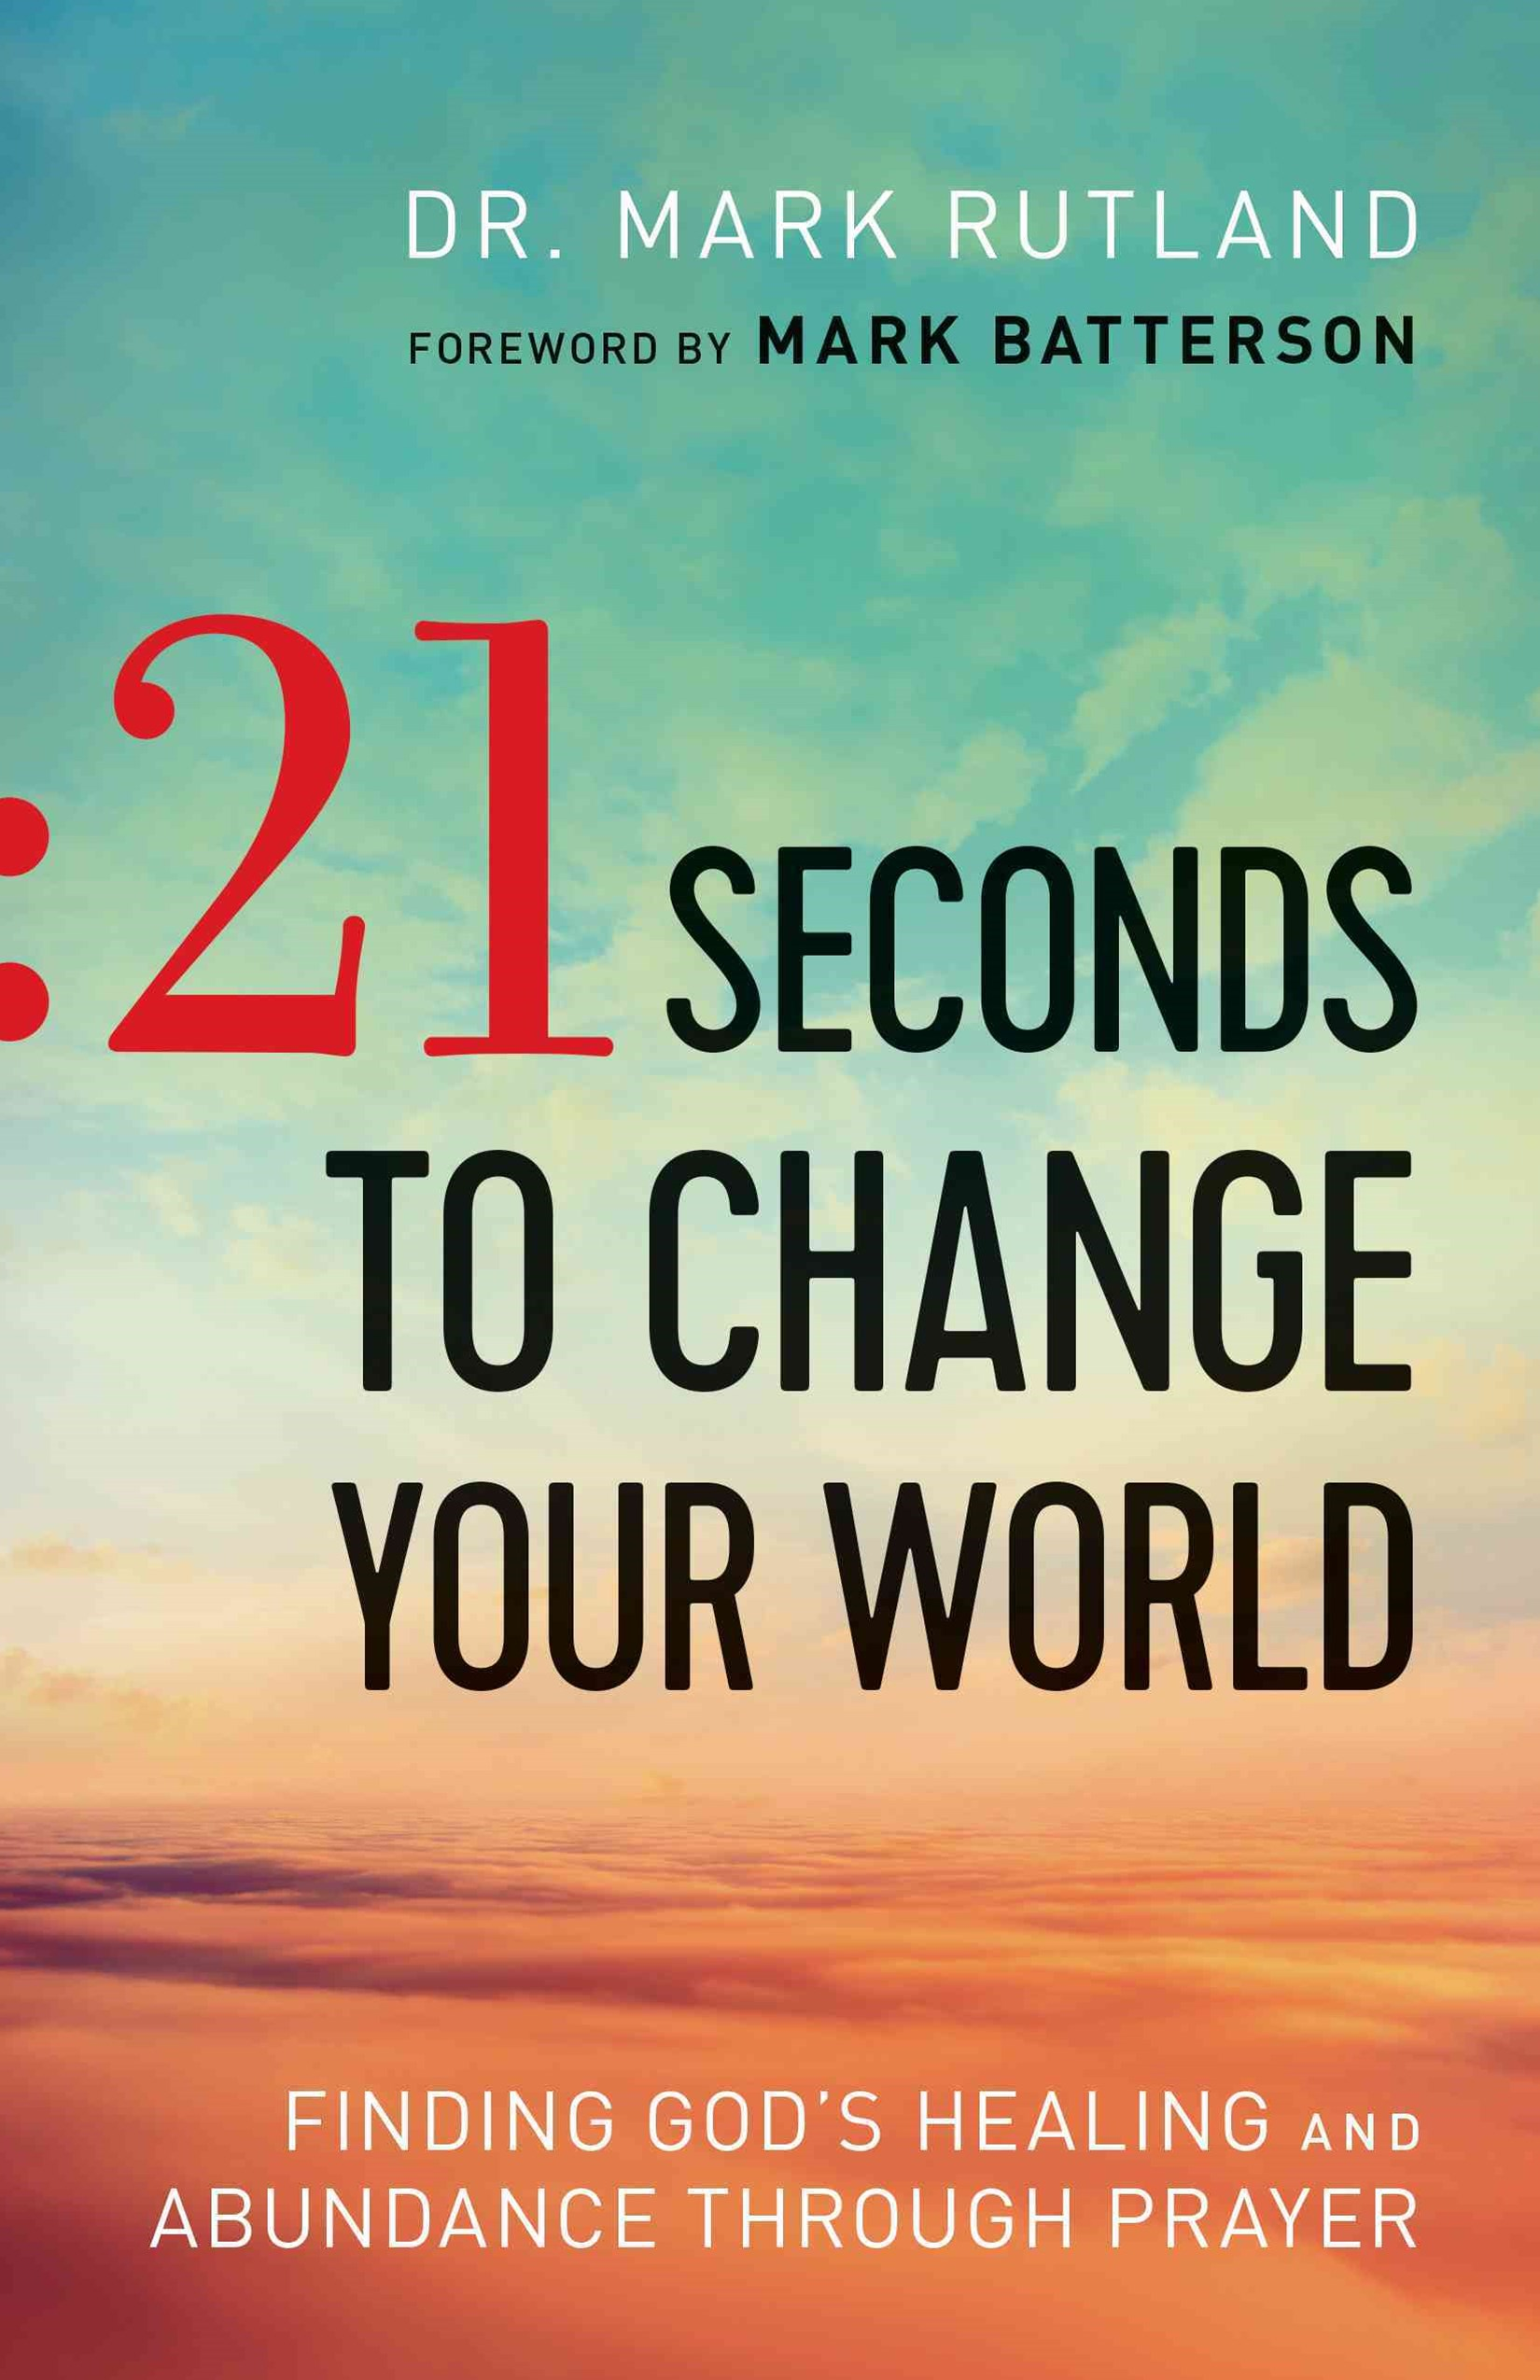 21 Seconds to Change Your World